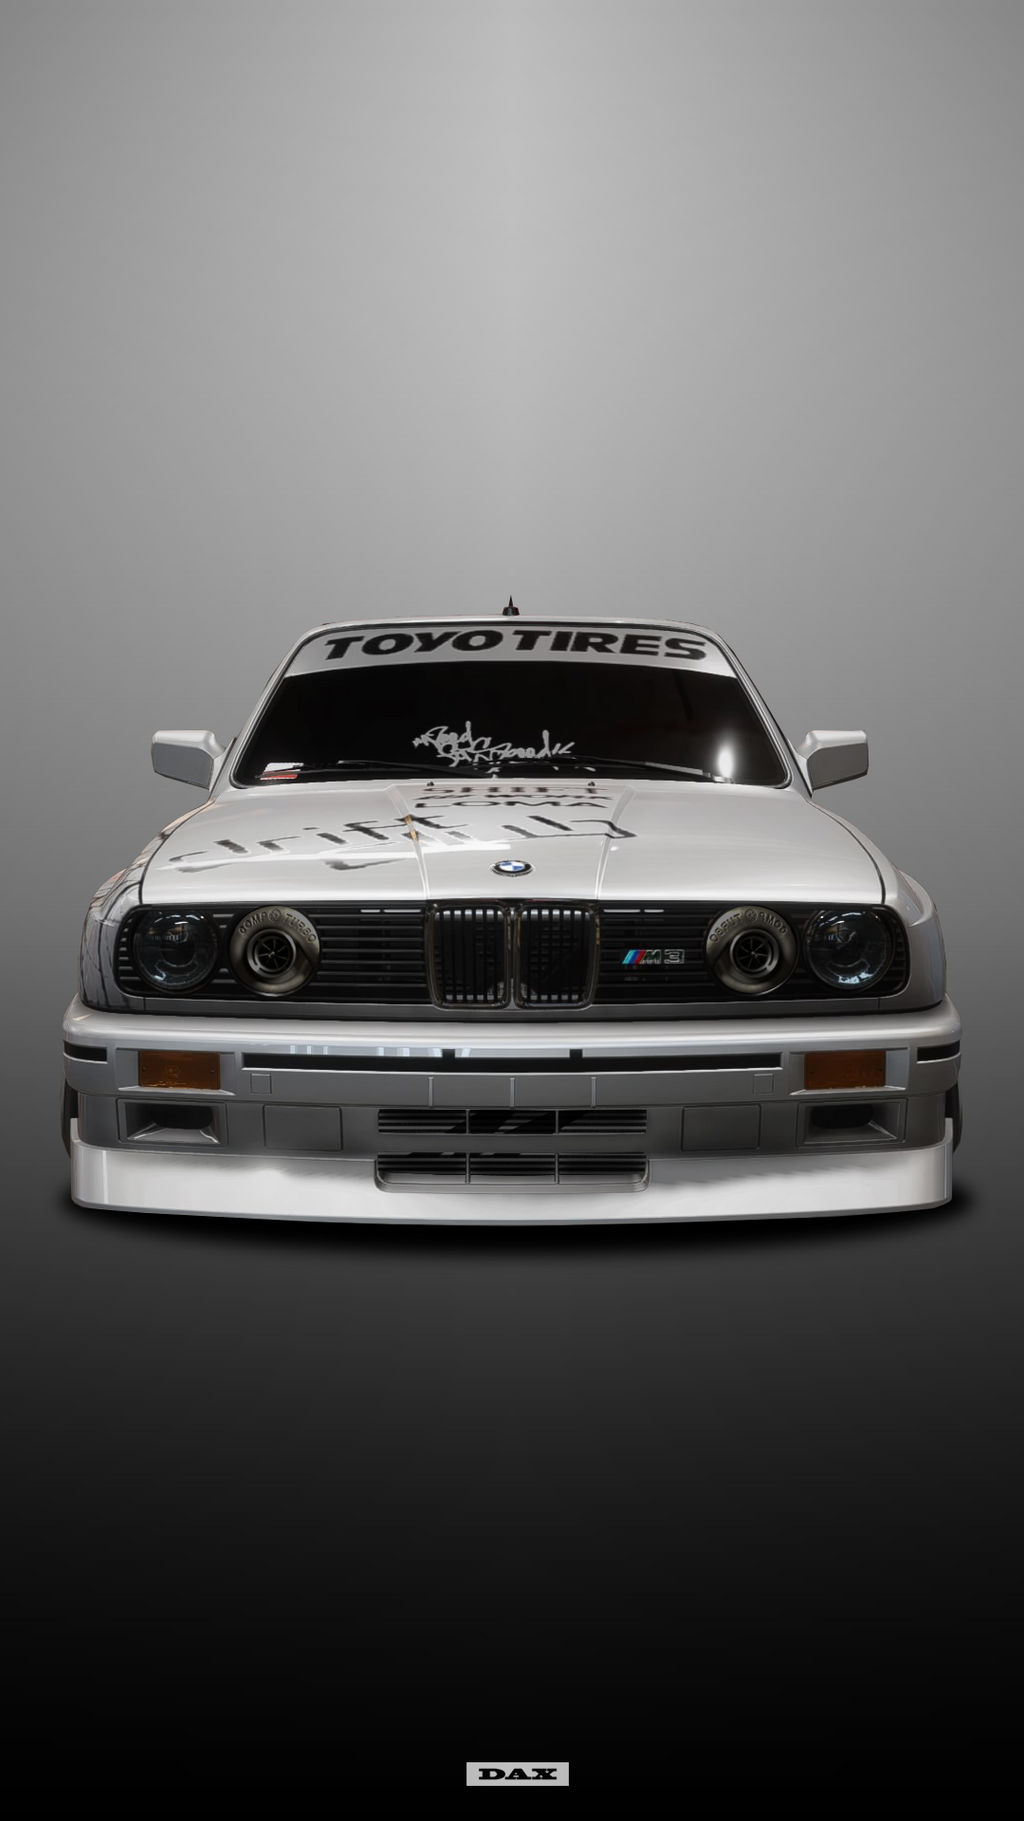 Bmw E30 Drift 23 Front By Dax5252 On Deviantart